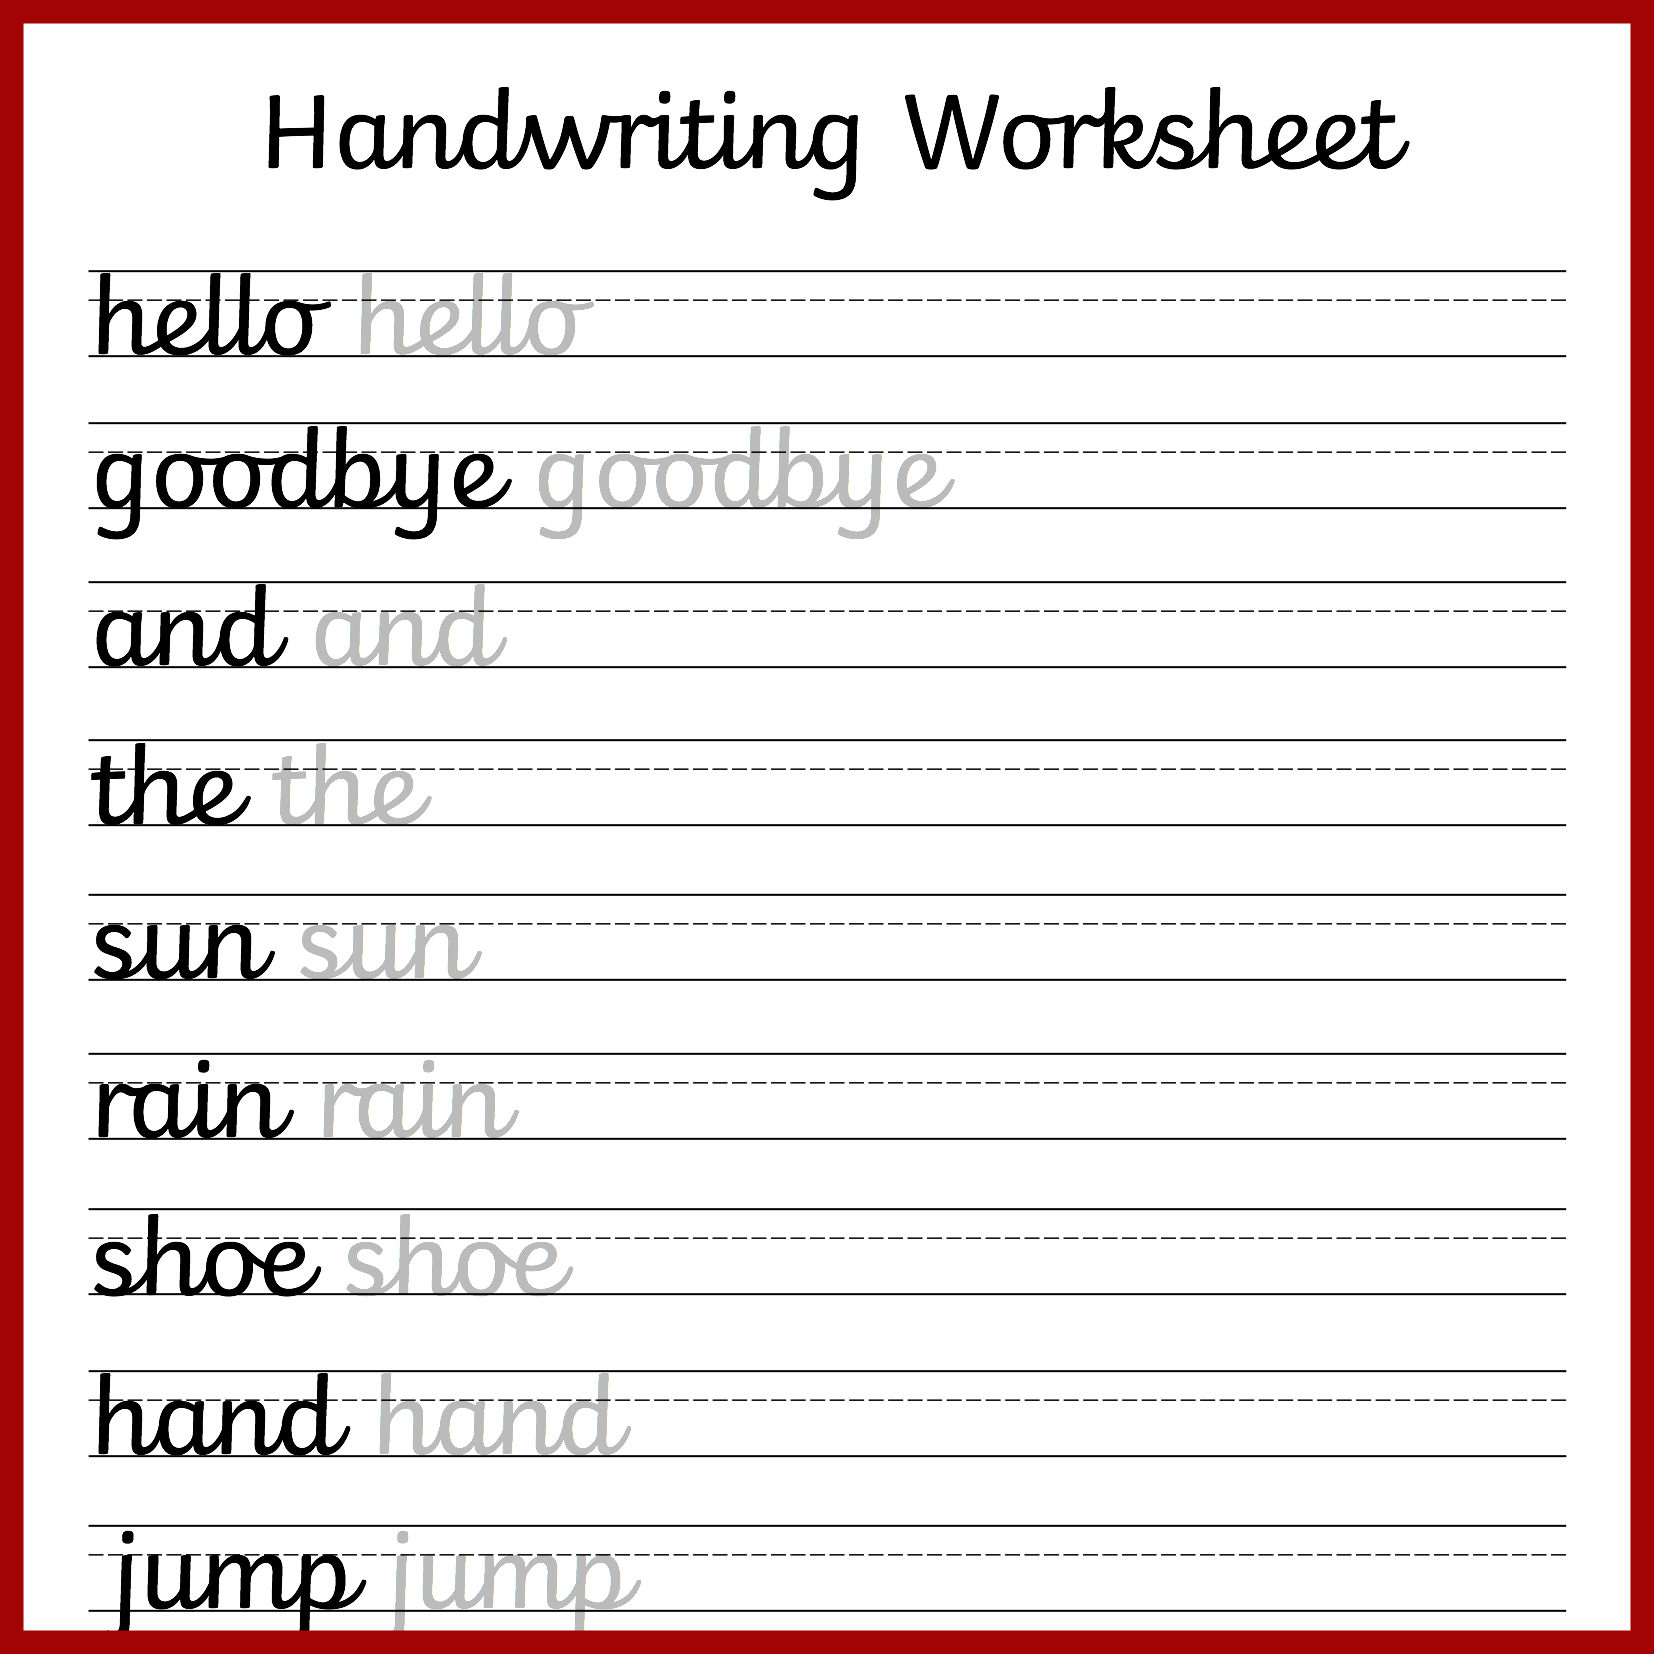 Cursive Handwriting Worksheets – Free Printable! ⋆ Mama Geek | Printable Blank Handwriting Worksheets